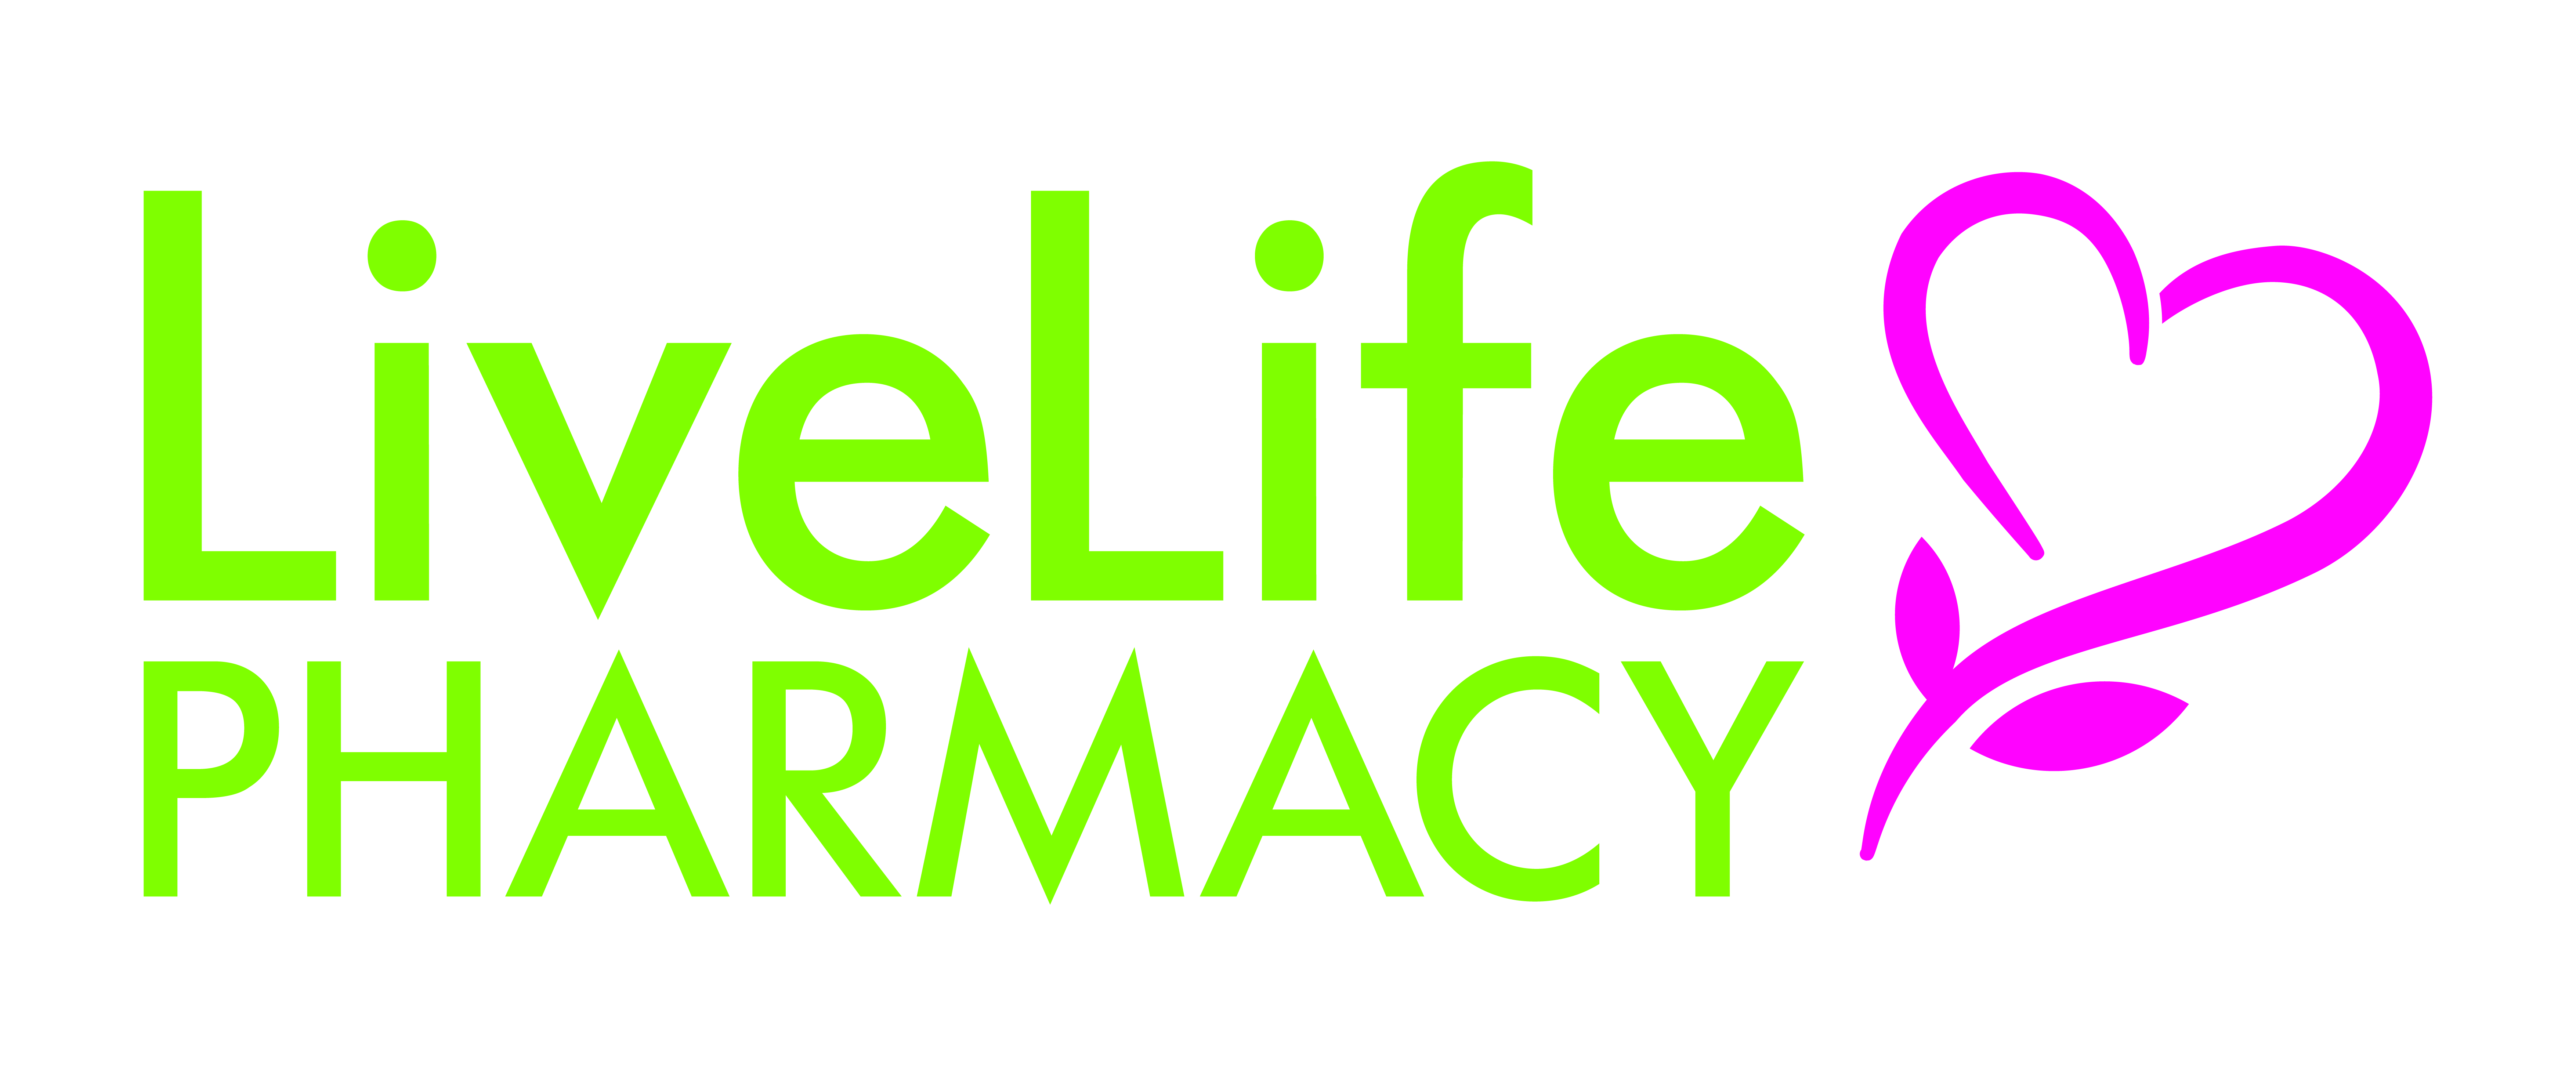 Livelife Pharmacy Cooroy